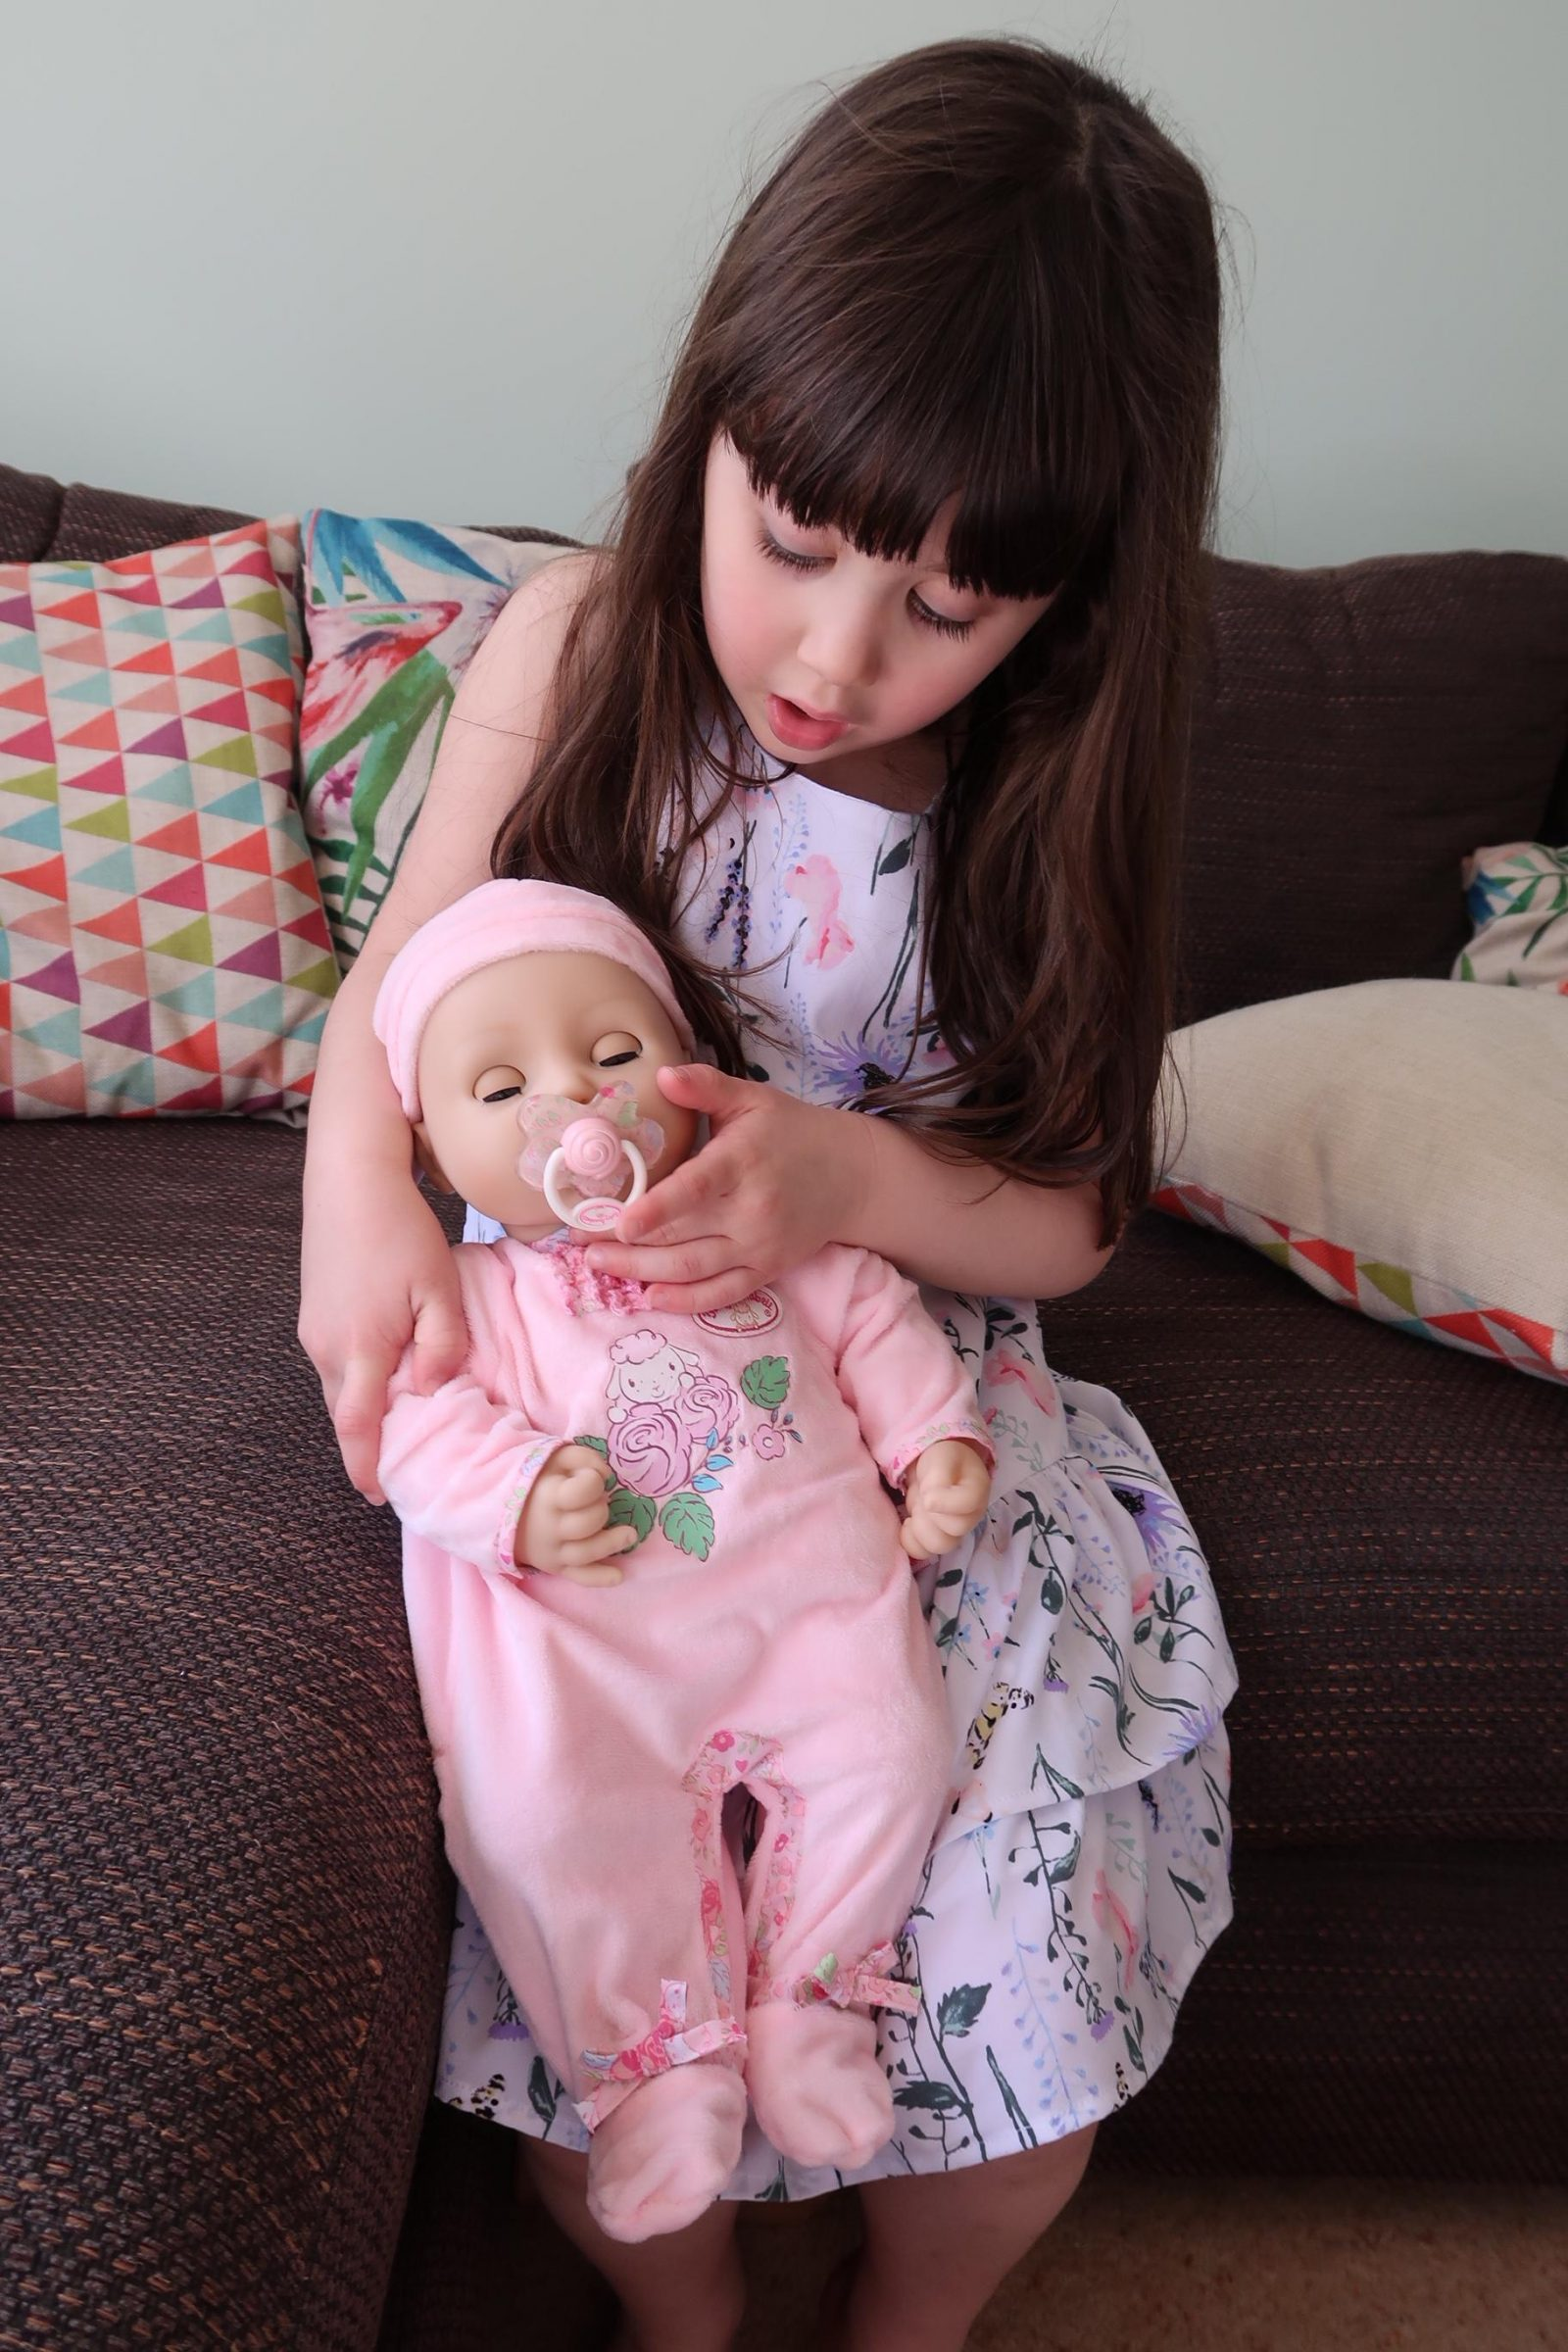 girl holding interactive baby Annabell doll